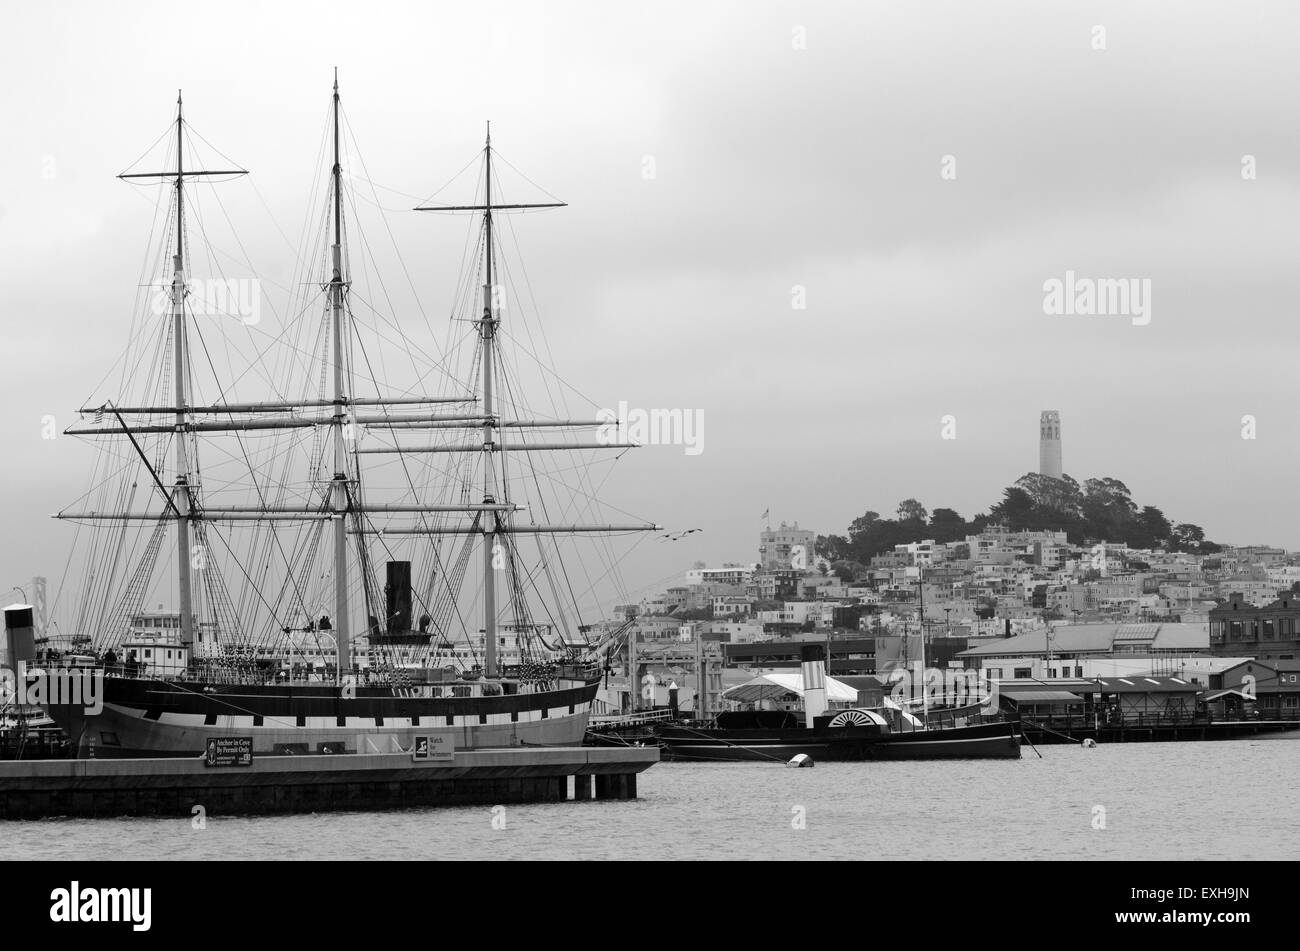 SAN FRANCISCO - MAY 17 2015:Hyde Street Pier in Fisherman's Wharf.Hyde Street Pier includes a fleet of historic Stock Photo